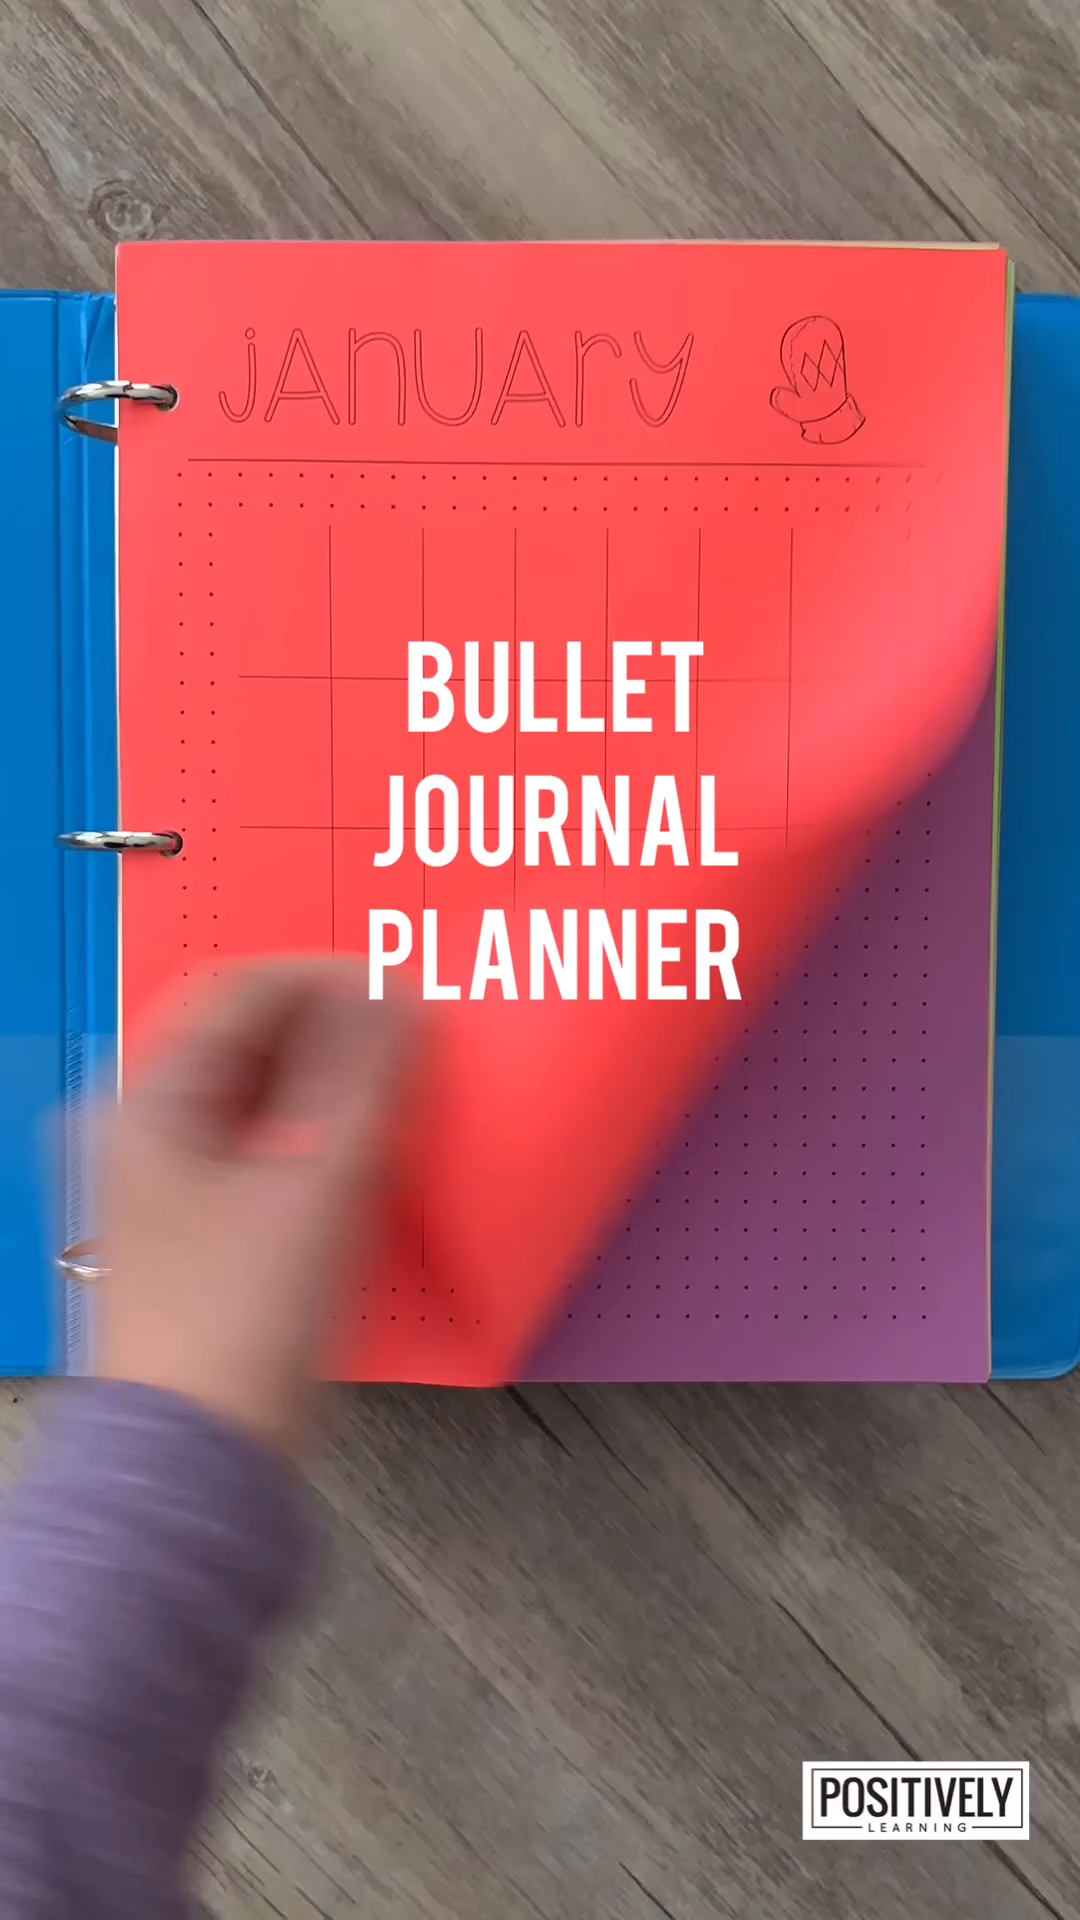 Teacher Planner #teacherplannerfree The last teacher planner you'll need - reprint EVERY year. Bullet Journal style pages with dot grids - perfect for the Type A planners, like me! From Positively Learning #teacherplanner #bulletjournal #planner #teacherplannerfree